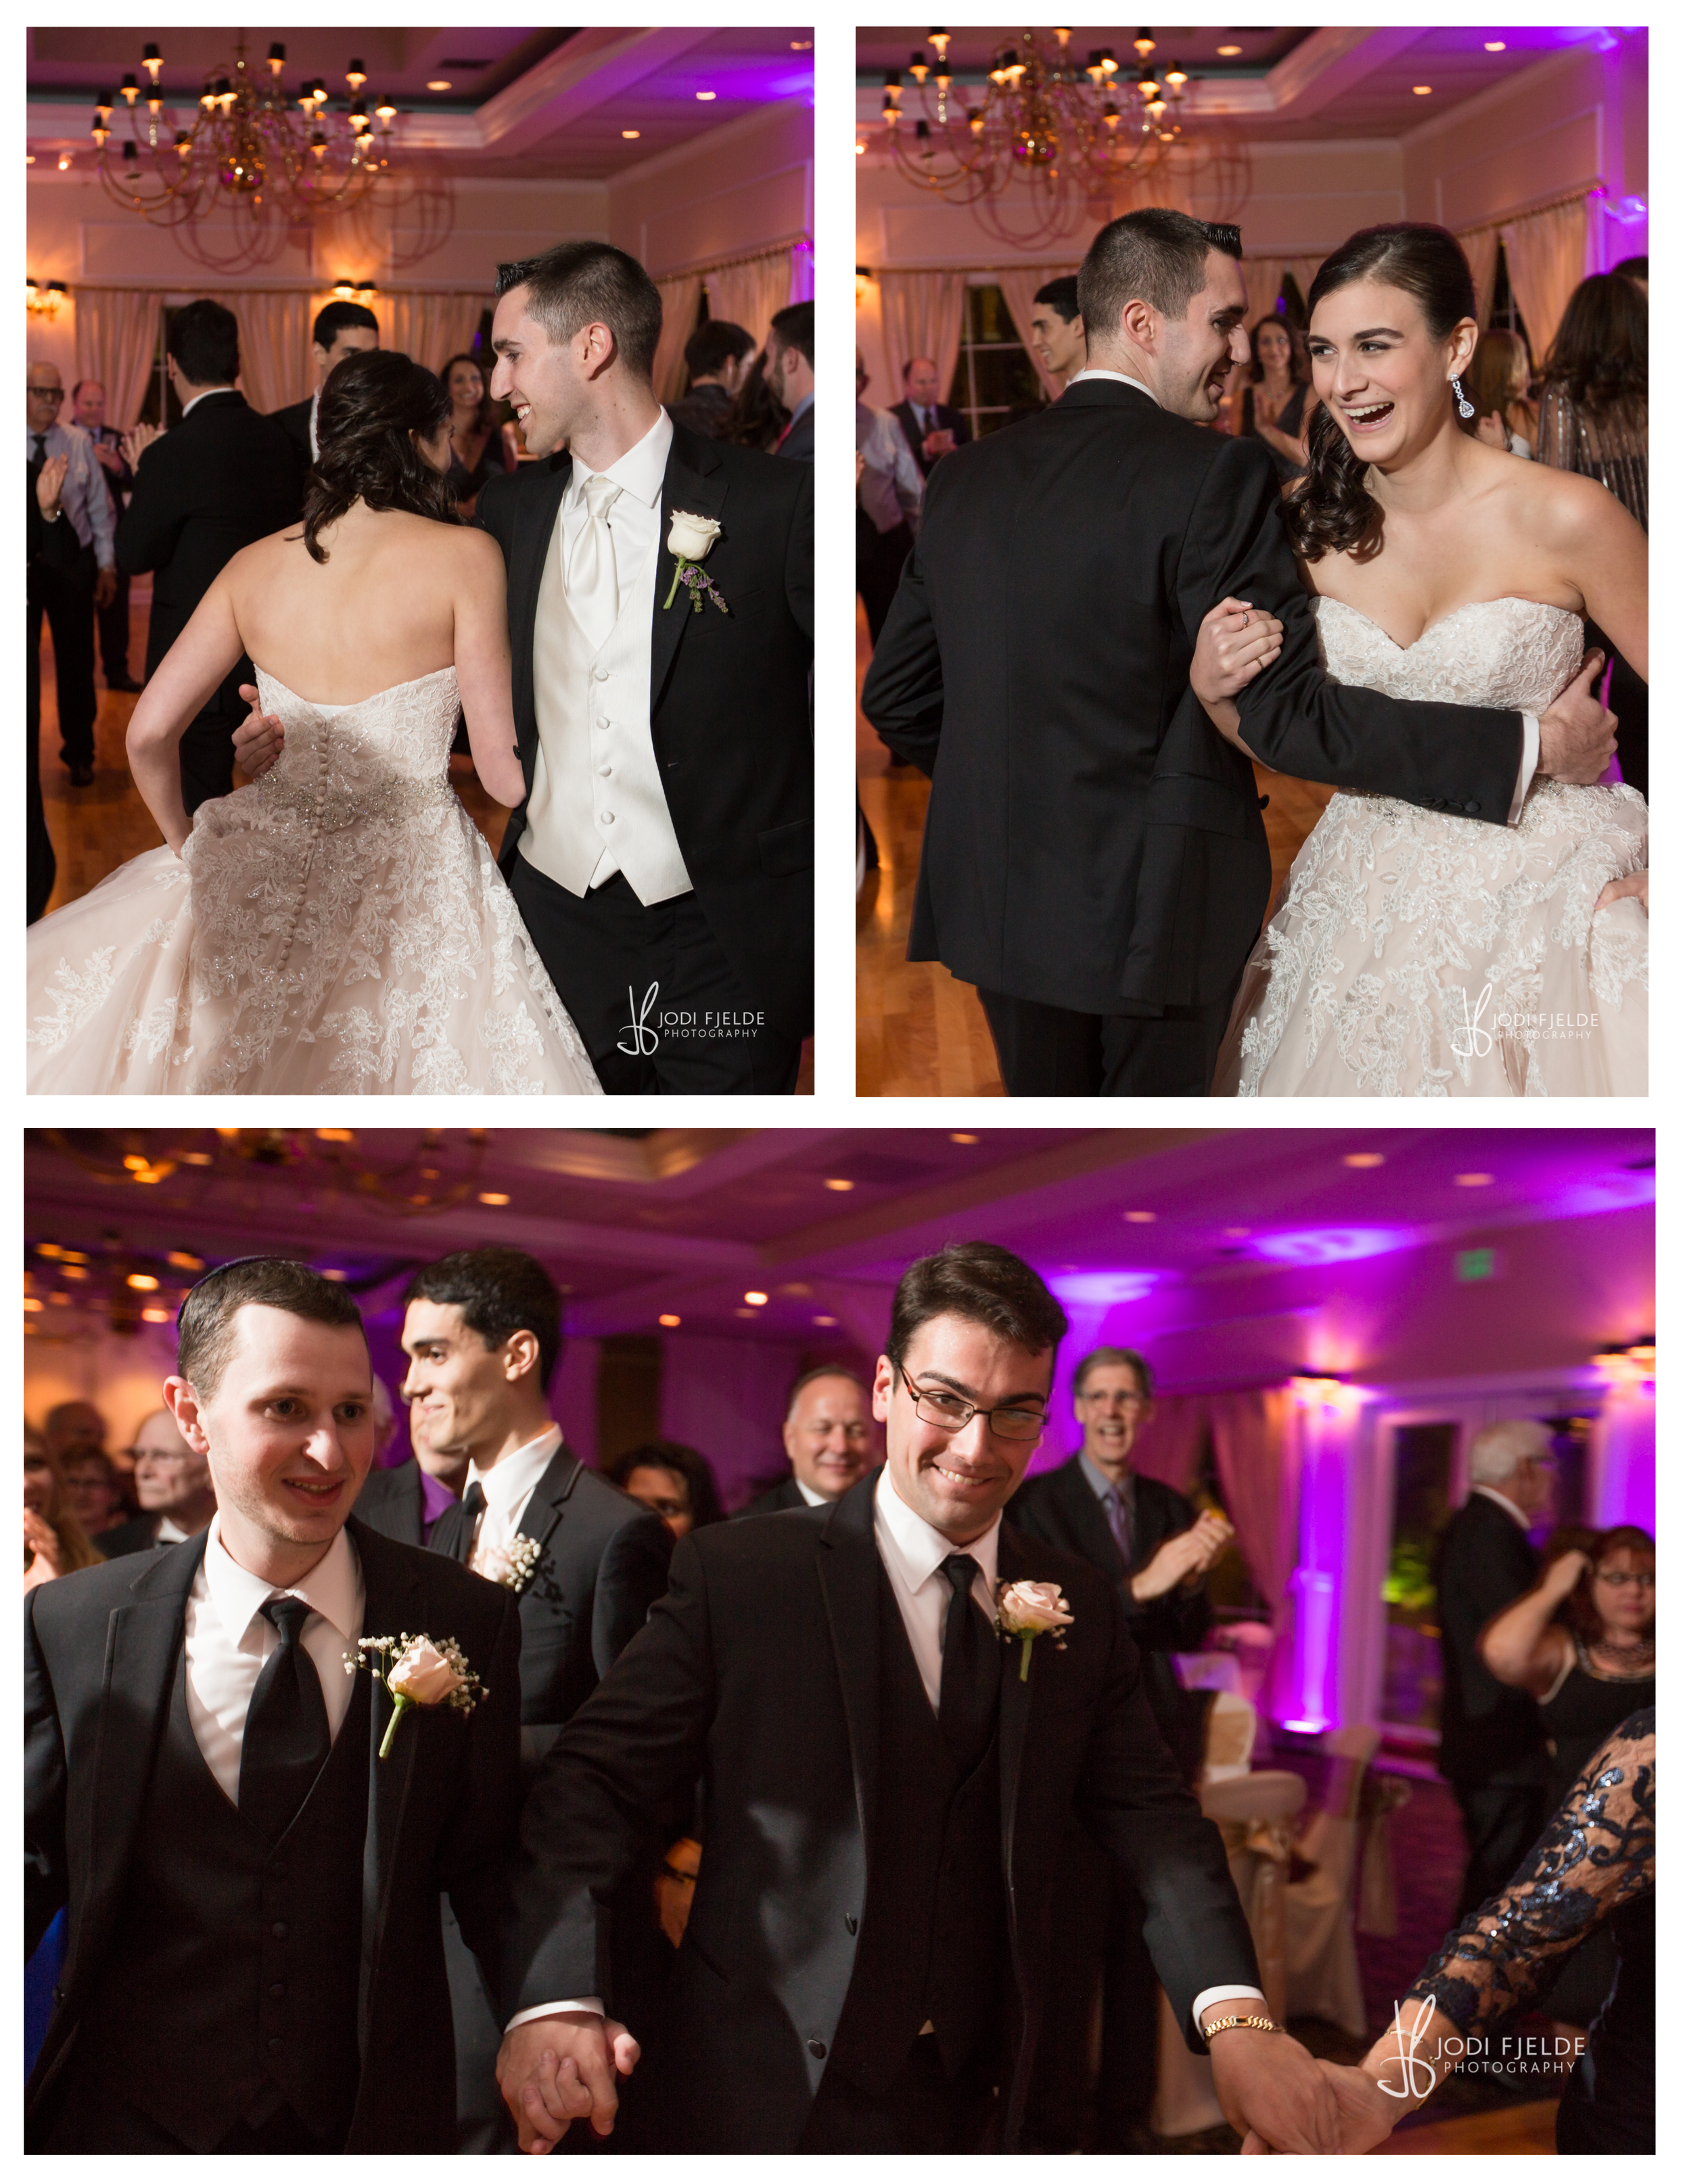 Benvenuto_Palm_Beach_Wedding_Jewish_Michelle & Jason_Jodi_Fjedle_Photography 52.jpg